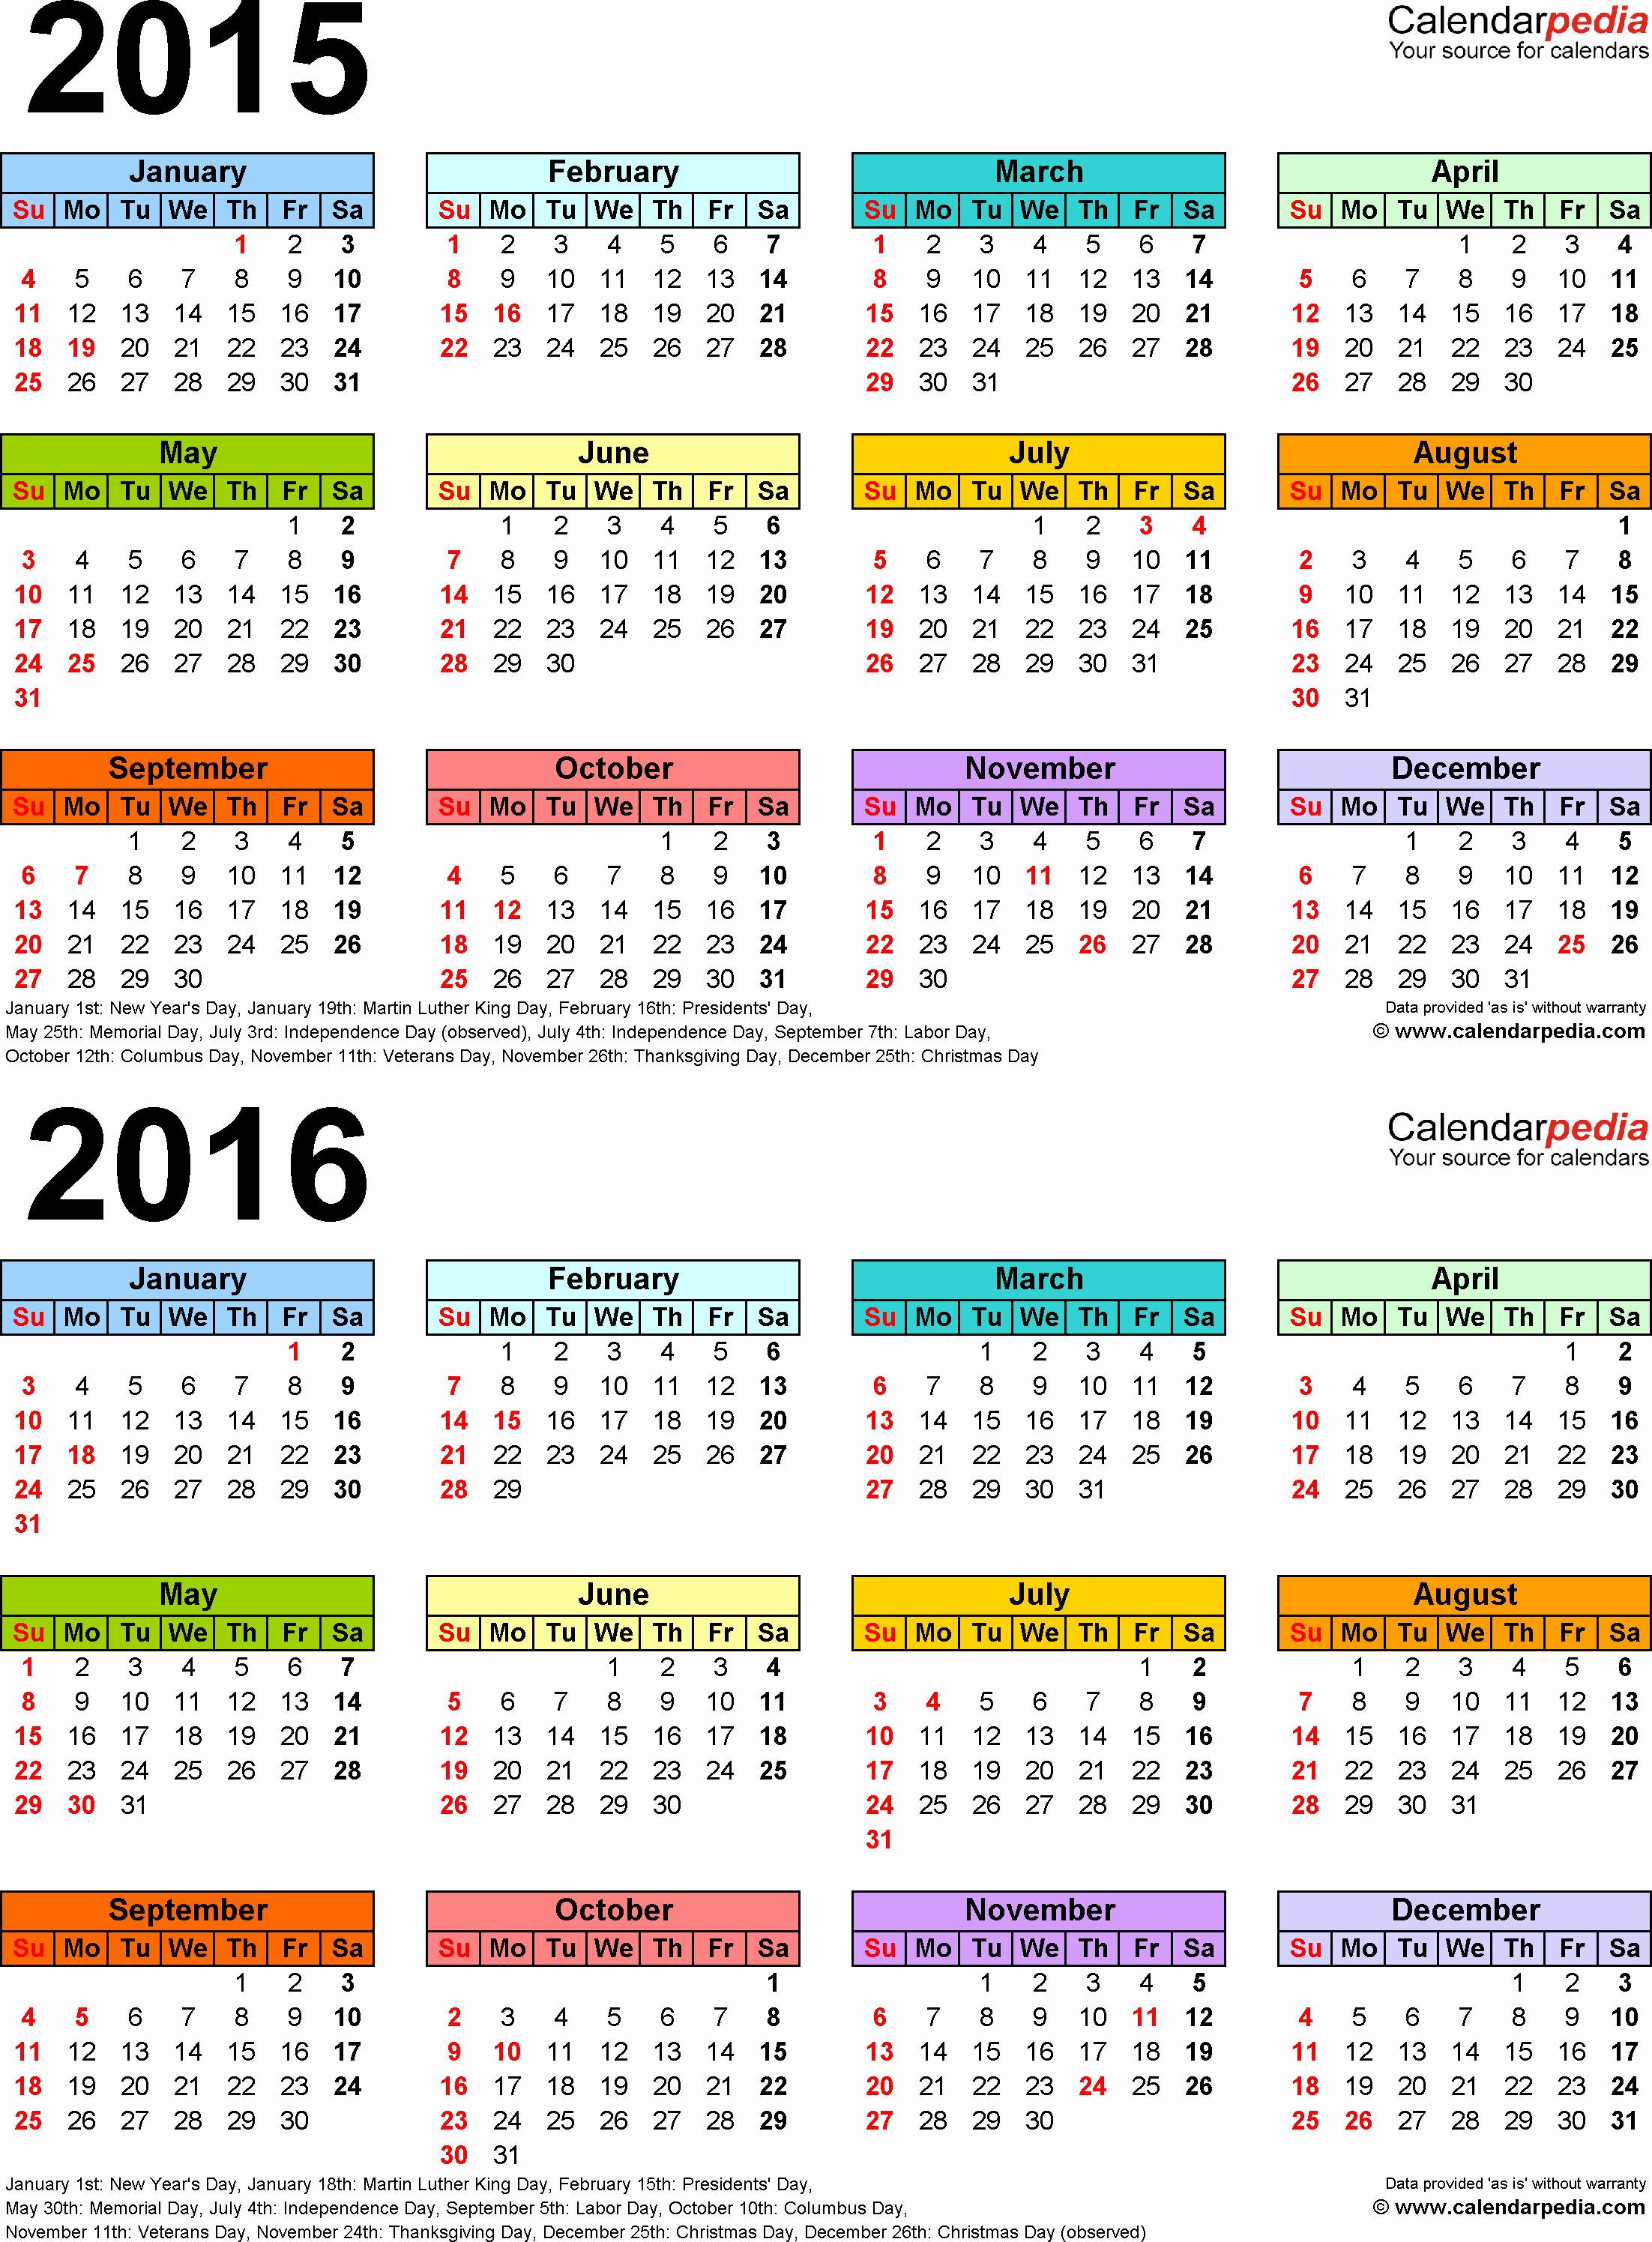 Calendar 2016-17 Template Awesome 2015 2016 Calendar Free Printable Two Year Pdf Calendars